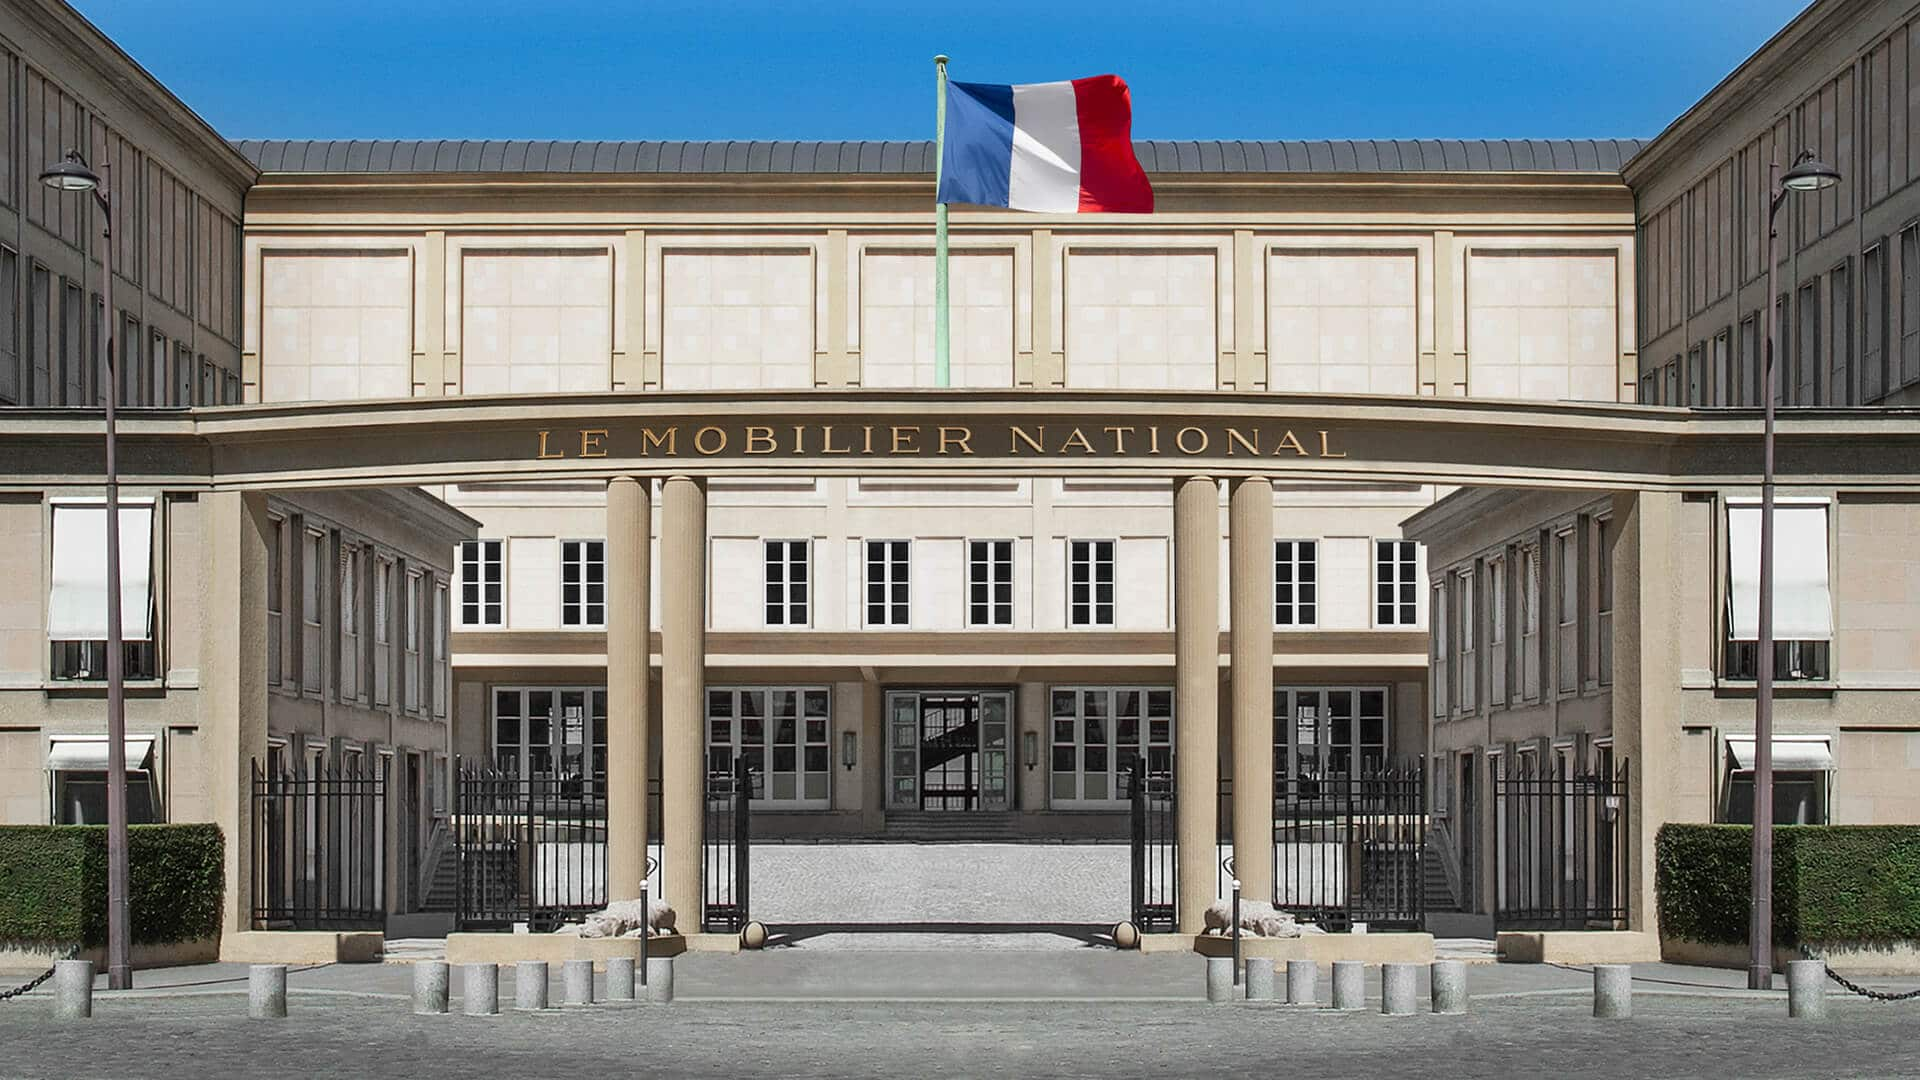 L'école mobilier national Paris